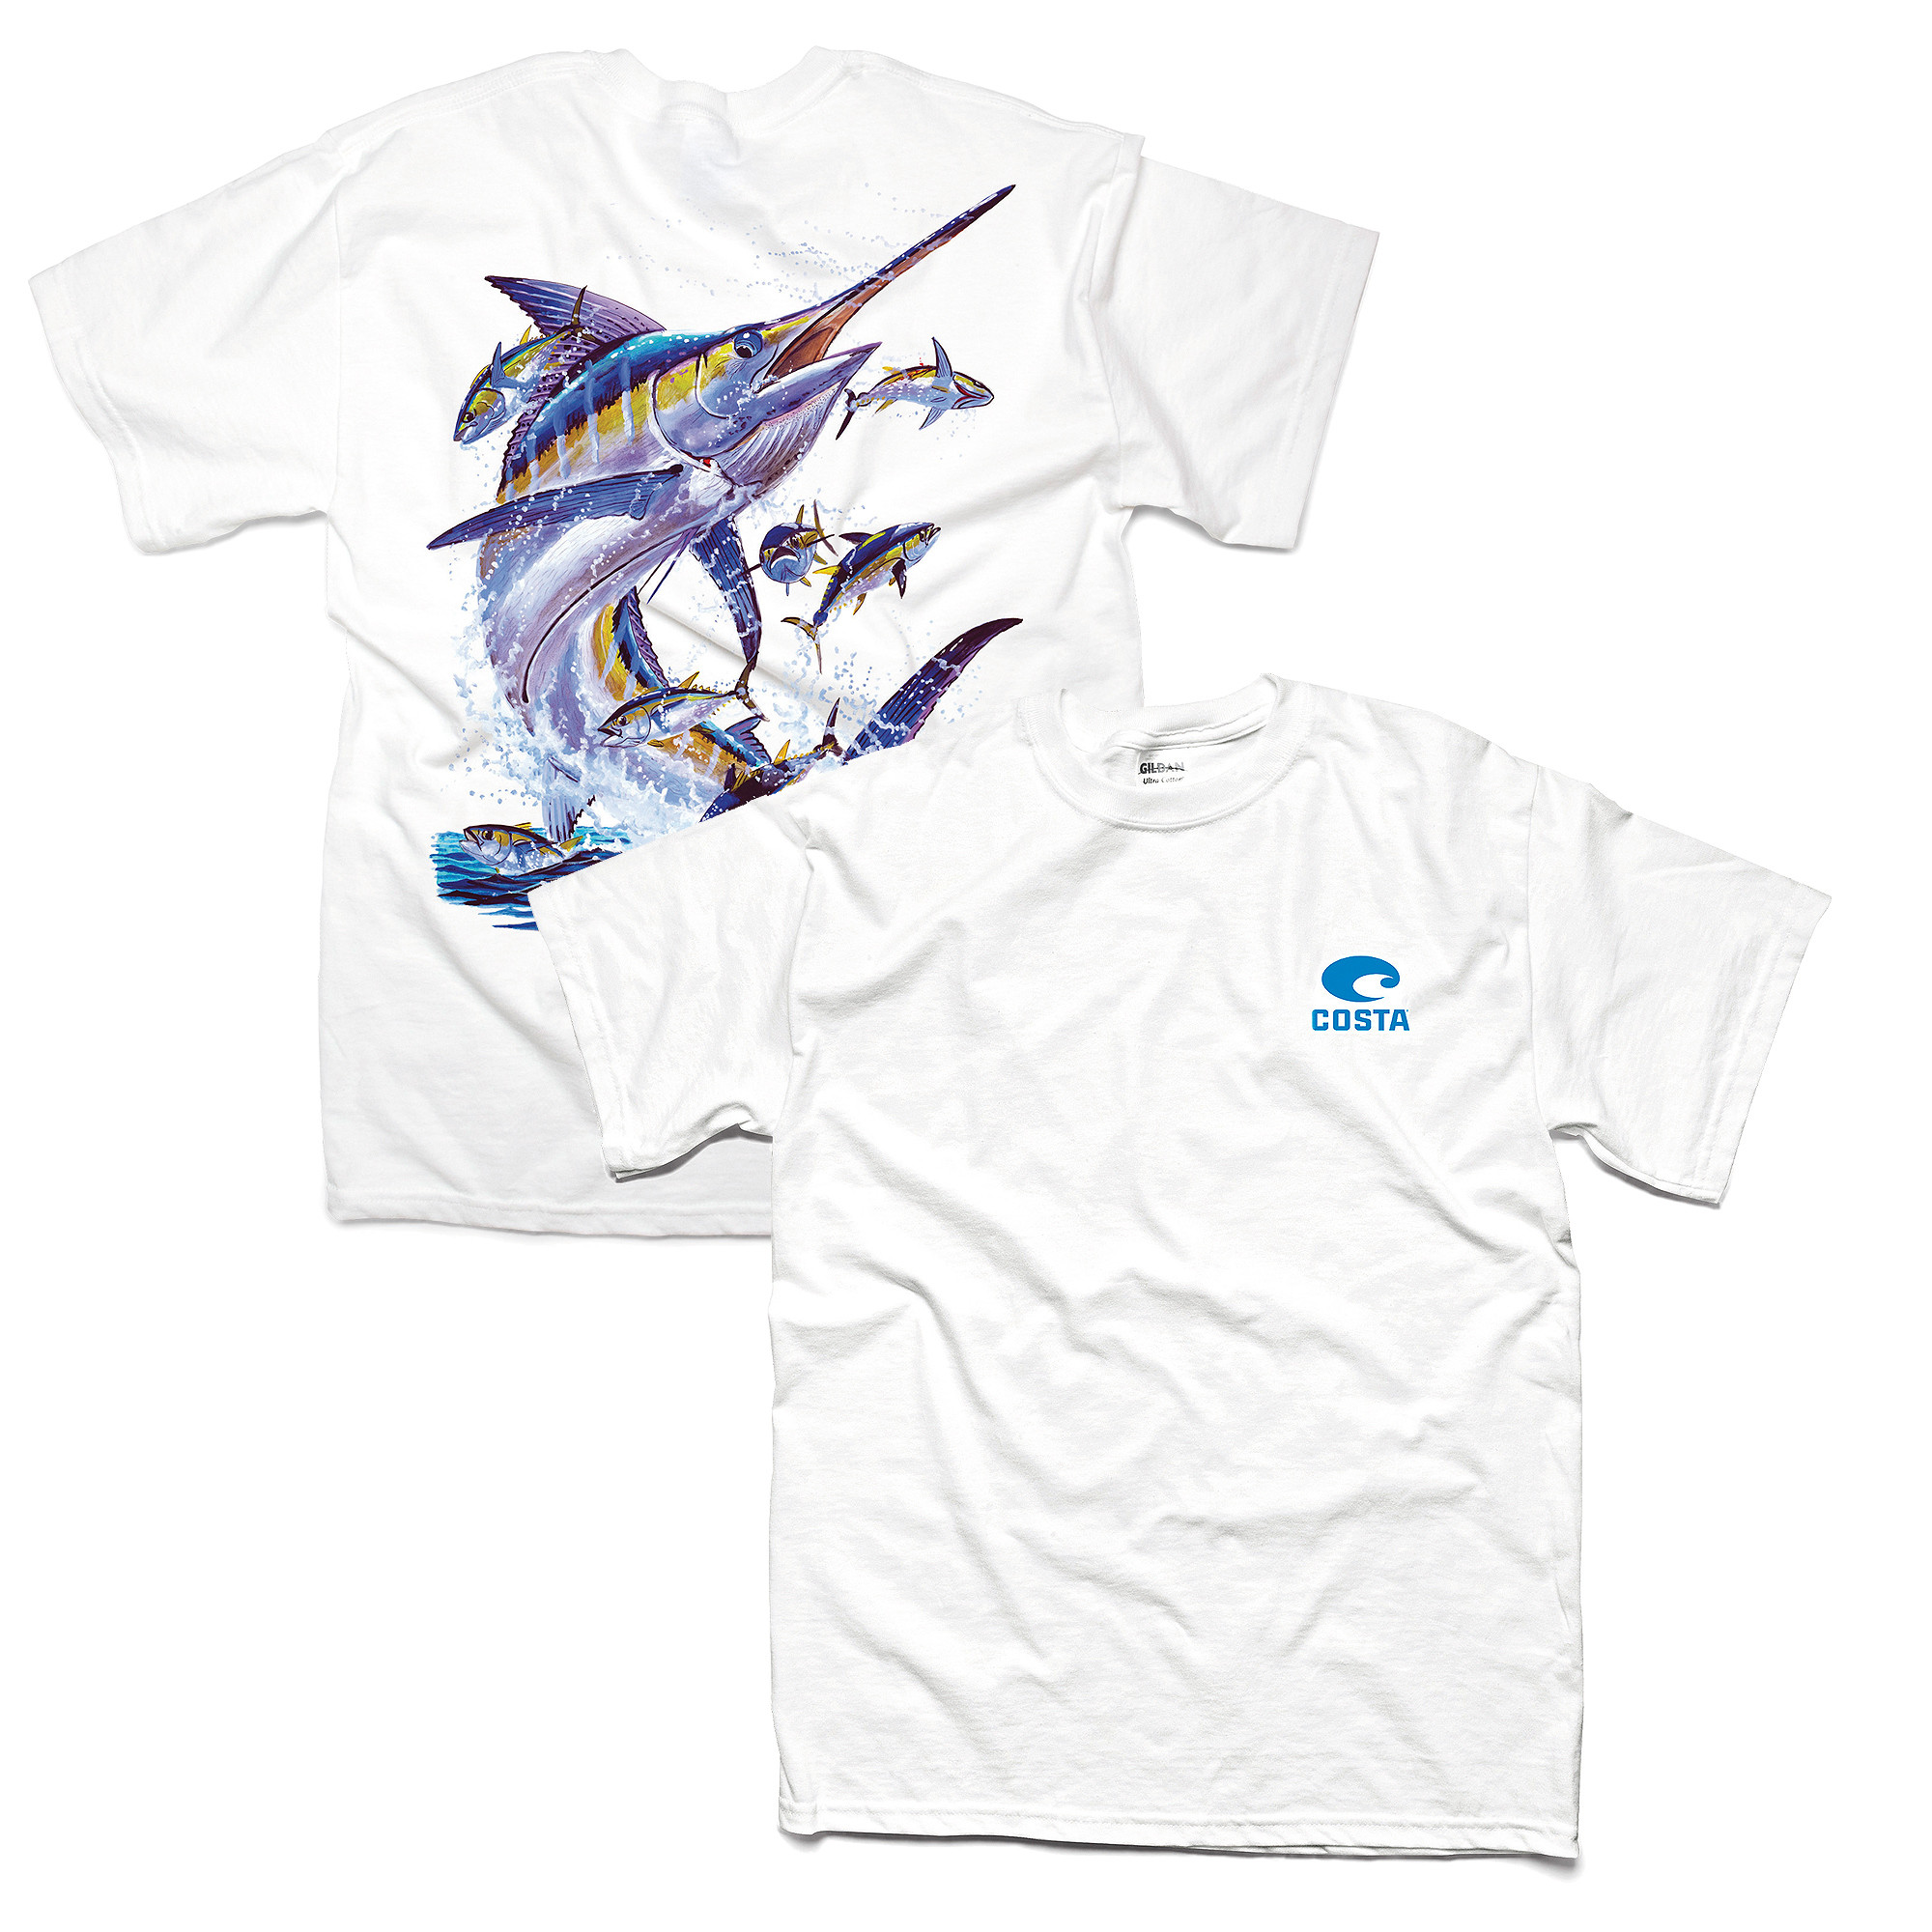 Costa t shirt marlin outlet flyfishingeurope for Costa fishing shirt